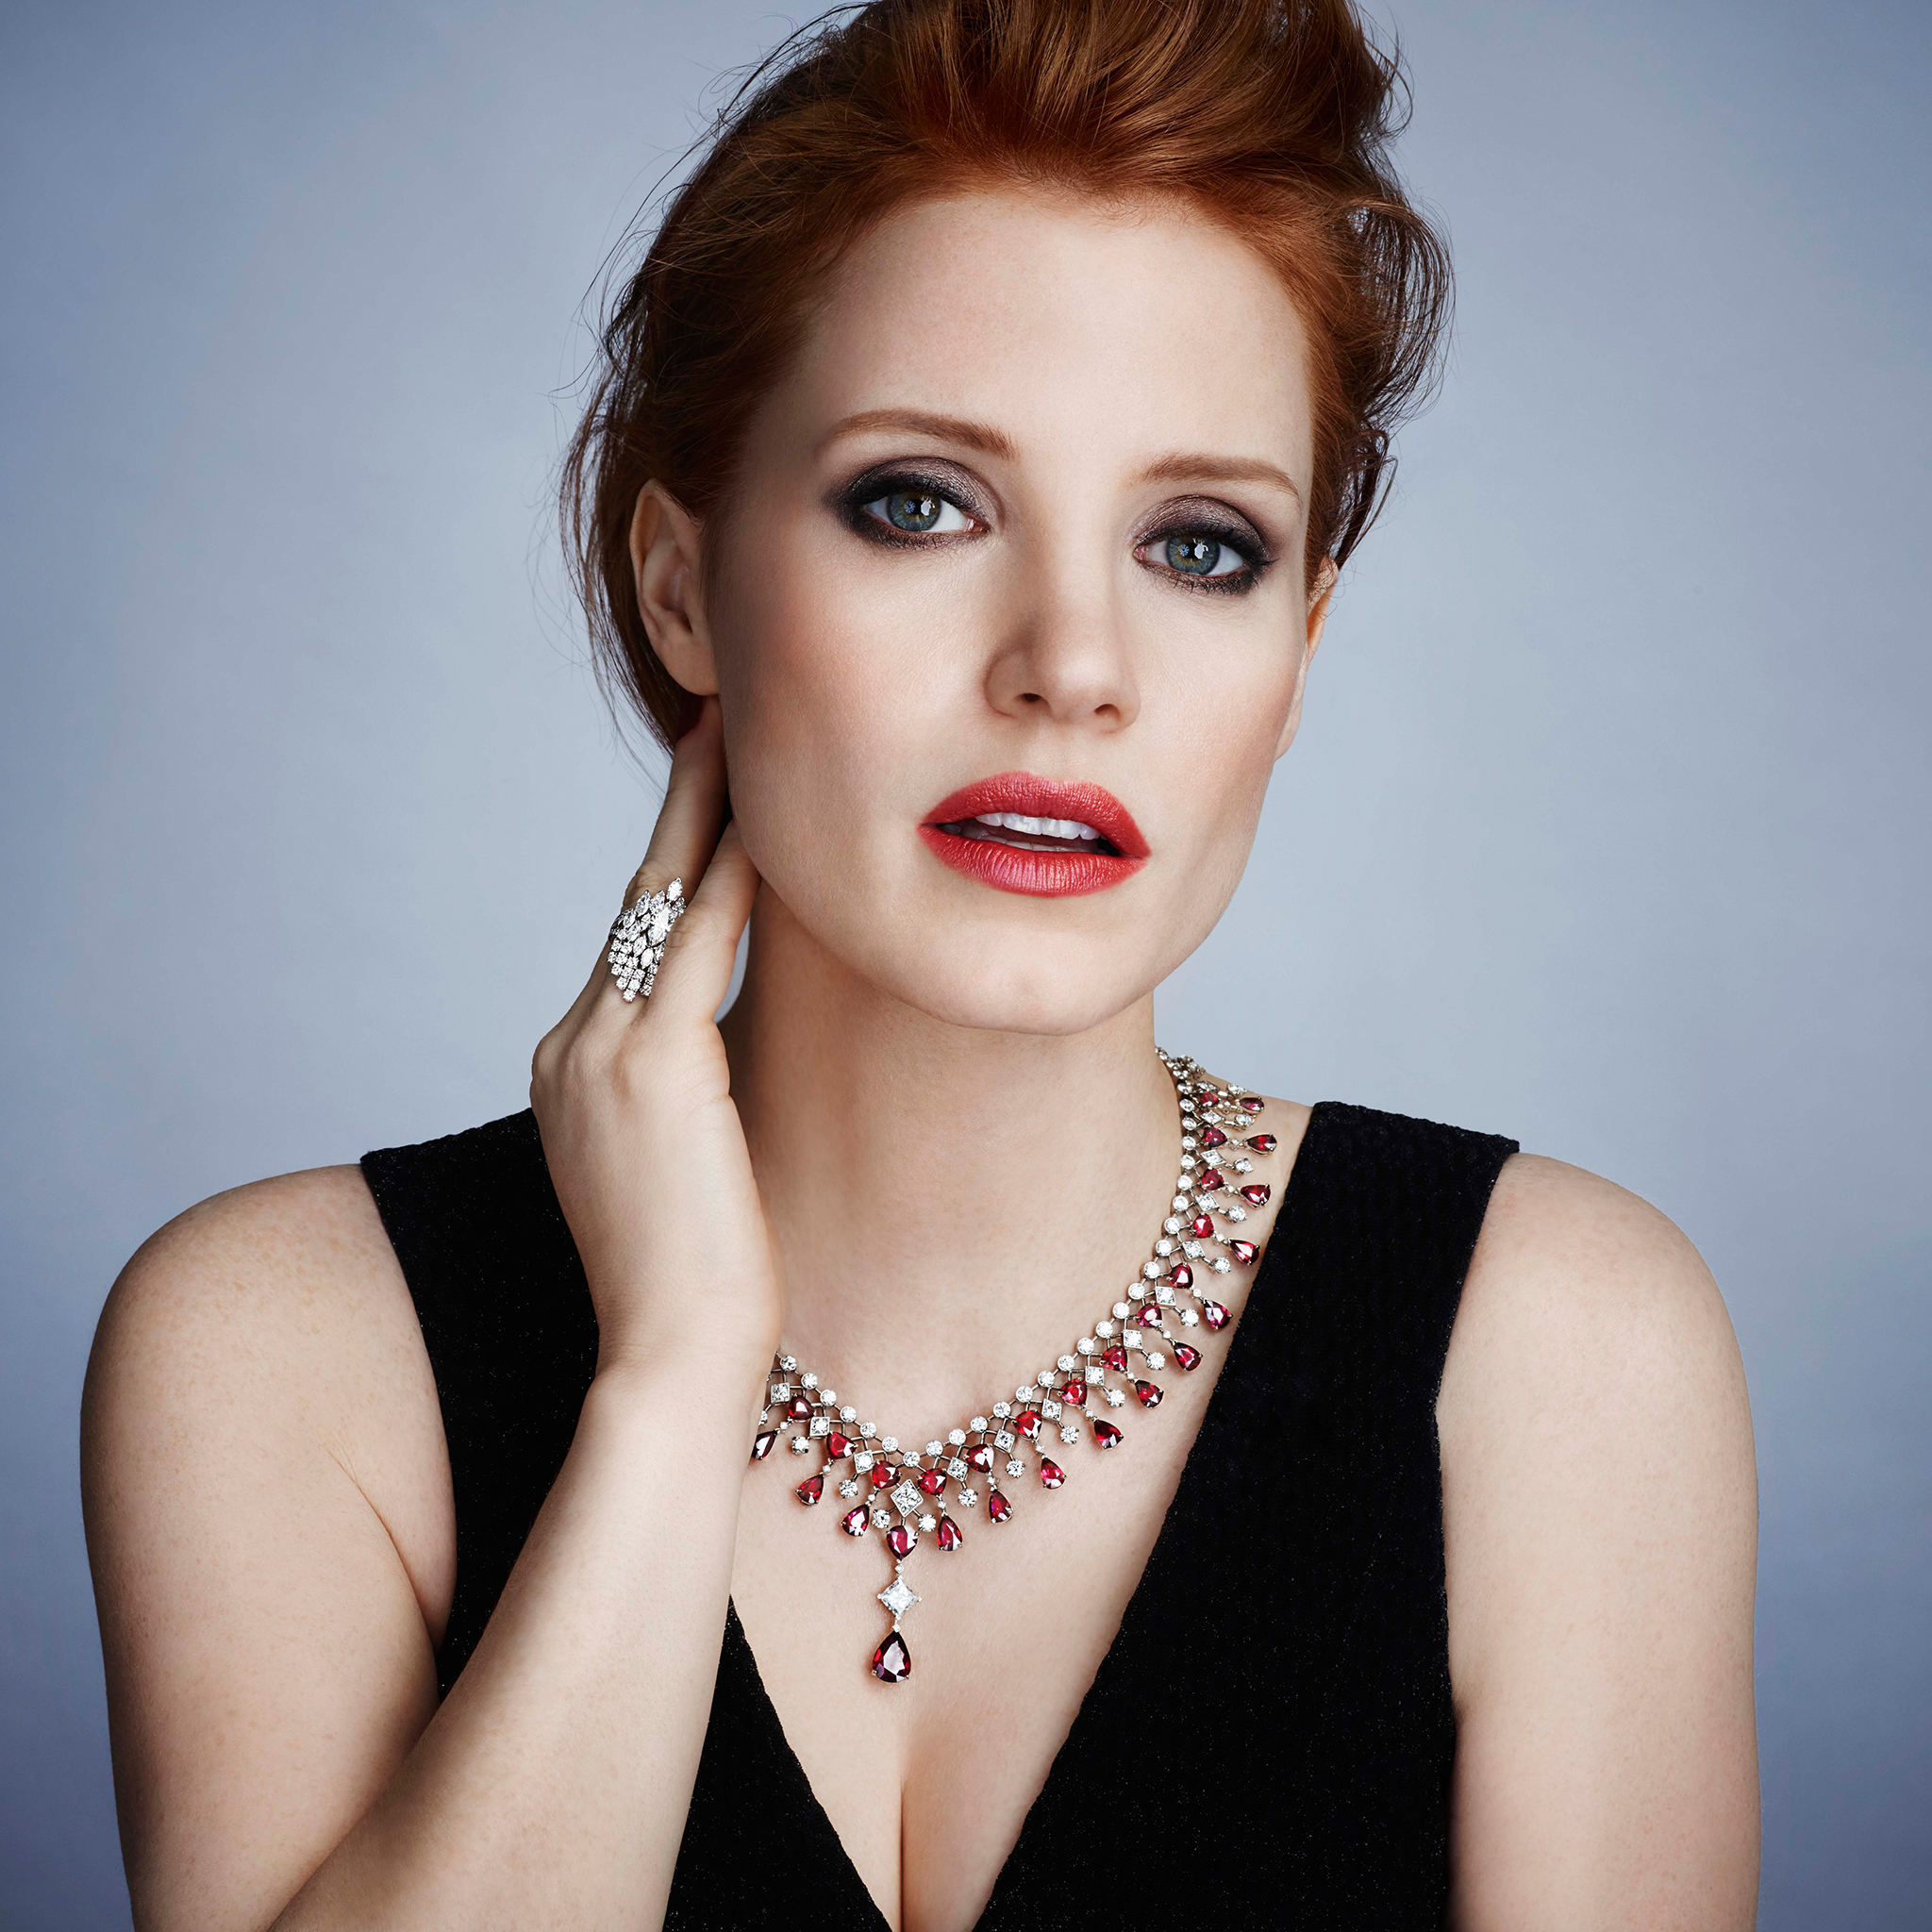 jessica chastain twitterjessica chastain gif, jessica chastain gif hunt, jessica chastain fan, jessica chastain mama, jessica chastain twitter, jessica chastain the help, jessica chastain miss sloane, jessica chastain films, jessica chastain site, jessica chastain movies, jessica chastain boyfriend, jessica chastain кинопоиск, jessica chastain png, jessica chastain quotes, jessica chastain listal, jessica chastain and bryce dallas howard, jessica chastain net worth, jessica chastain makeup, jessica chastain wallpapers, jessica chastain filmi